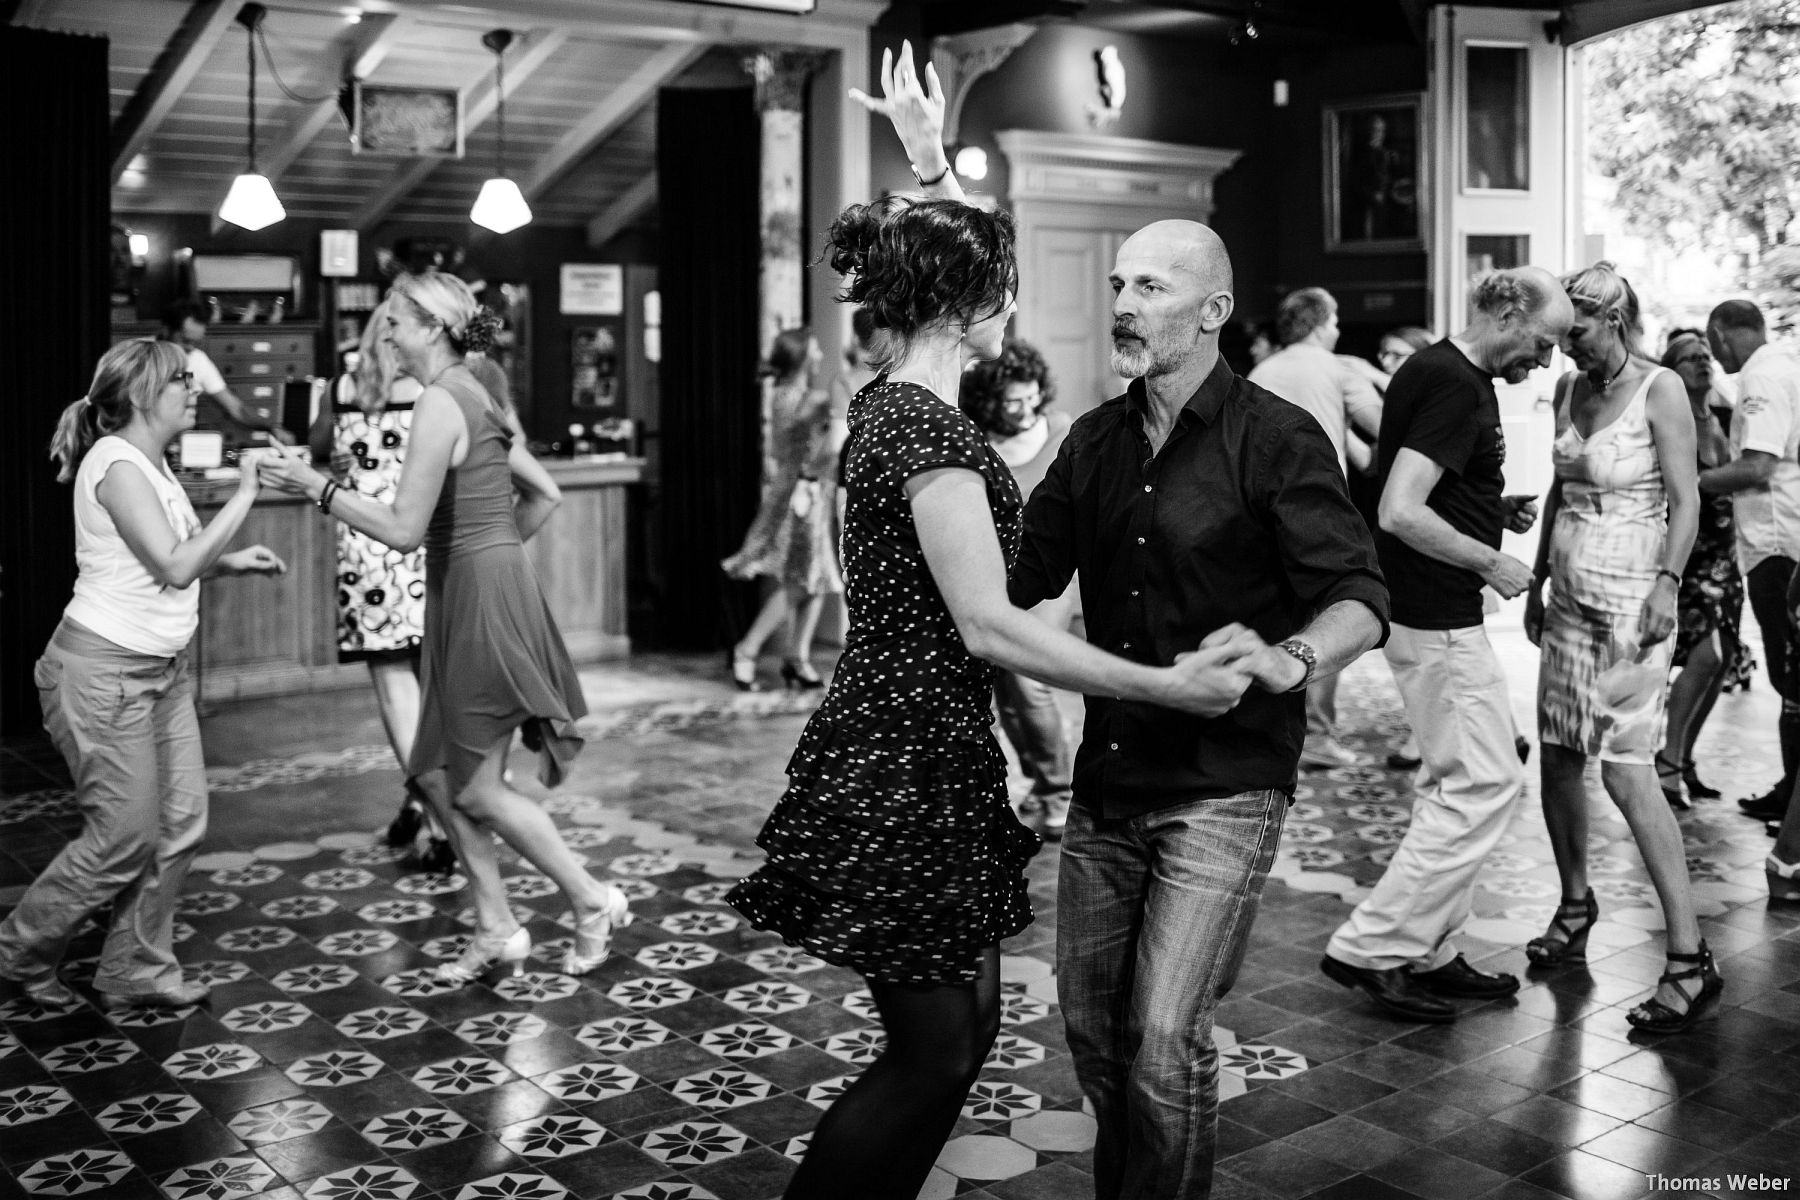 Fotograf Thomas Weber aus Oldenburg: Salsa- und Tango-Abende im Theater Laboratorium Oldenburg (40)